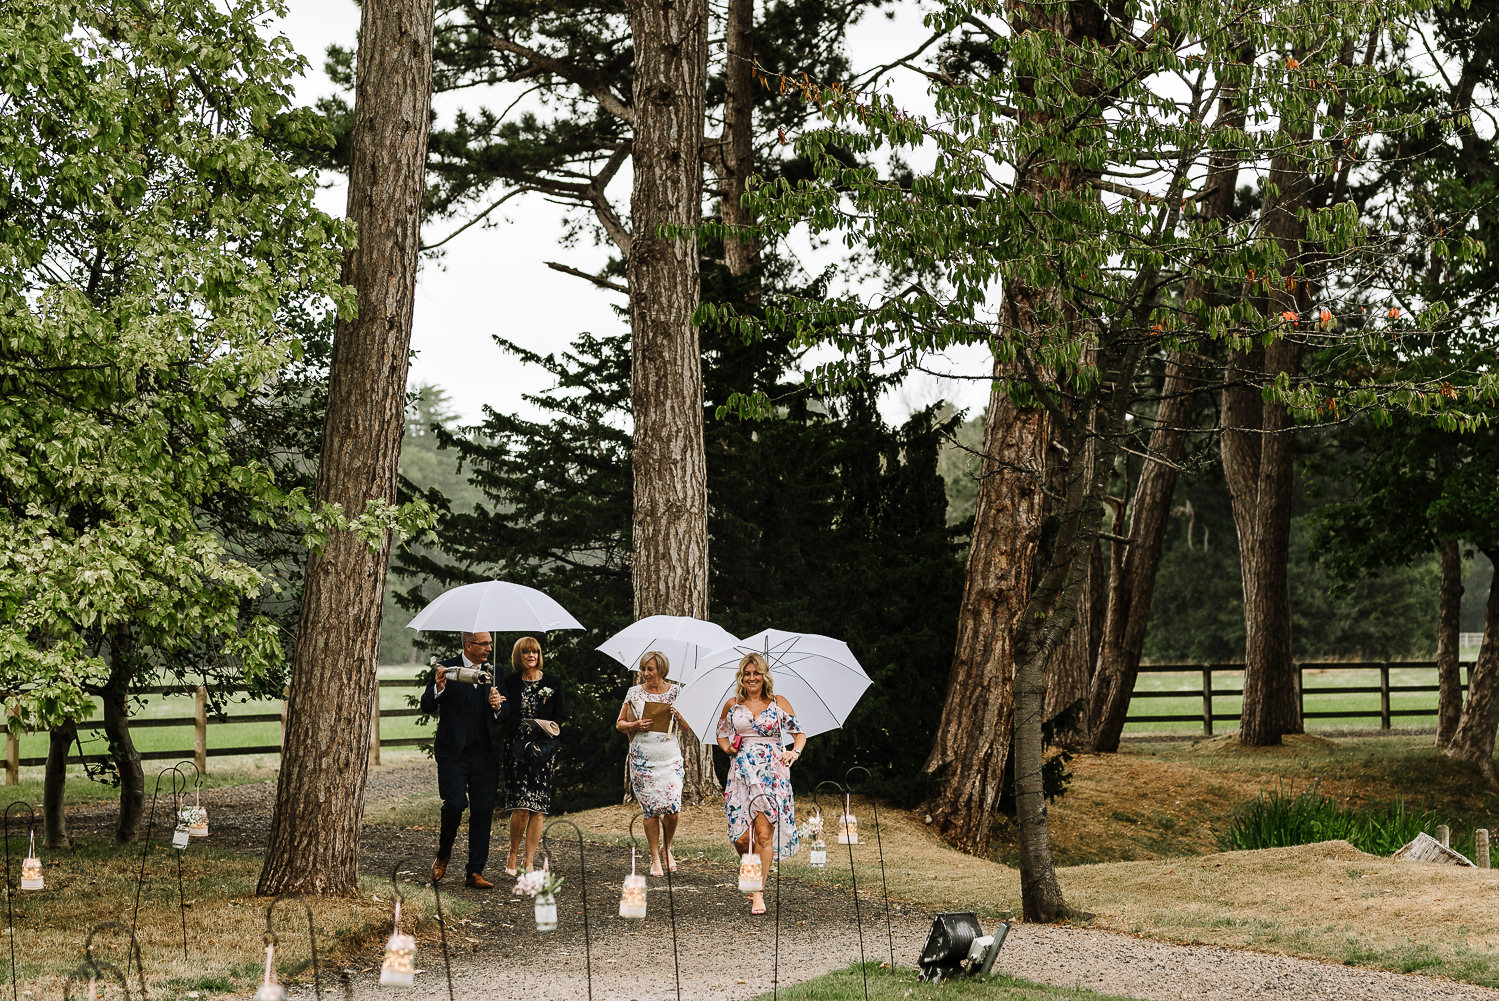 Guests walking to the pavilion with umbrellas